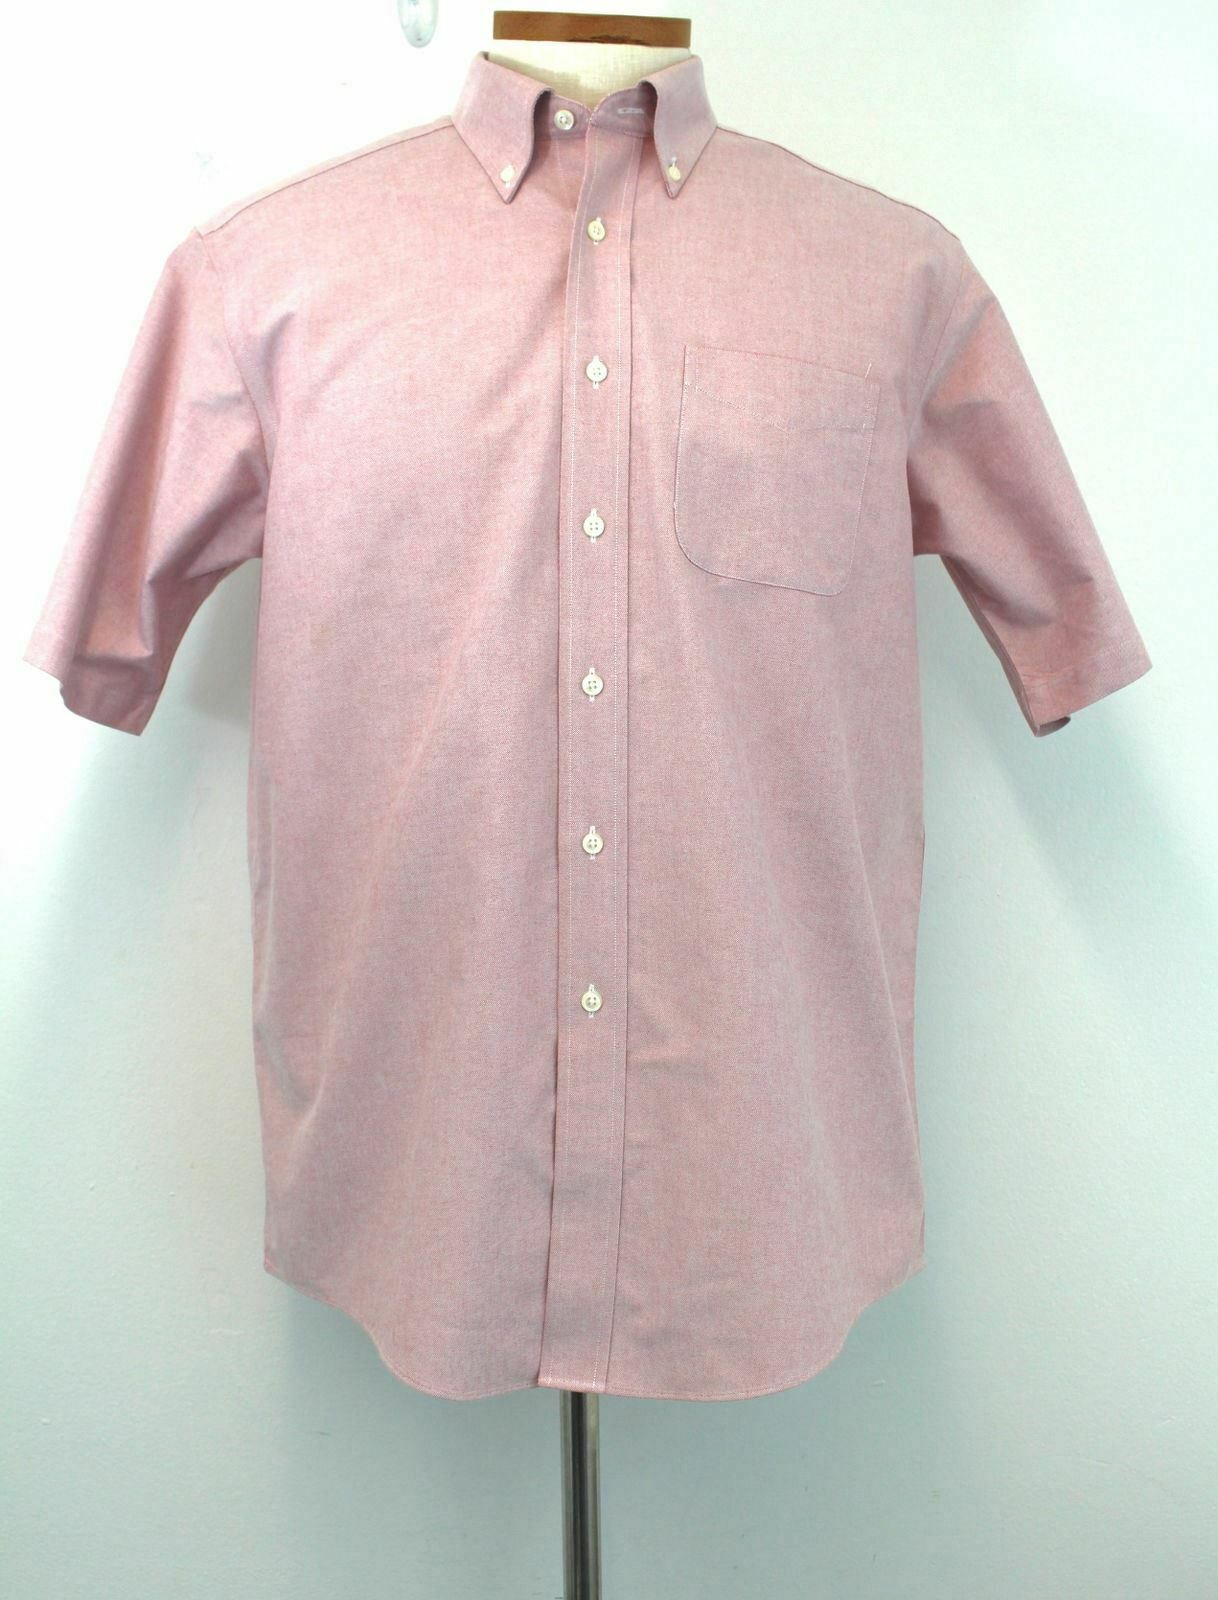 L.L. Bean Shirt 16 Red Men's 100% Cotton Wrinkle Resistant Button Front